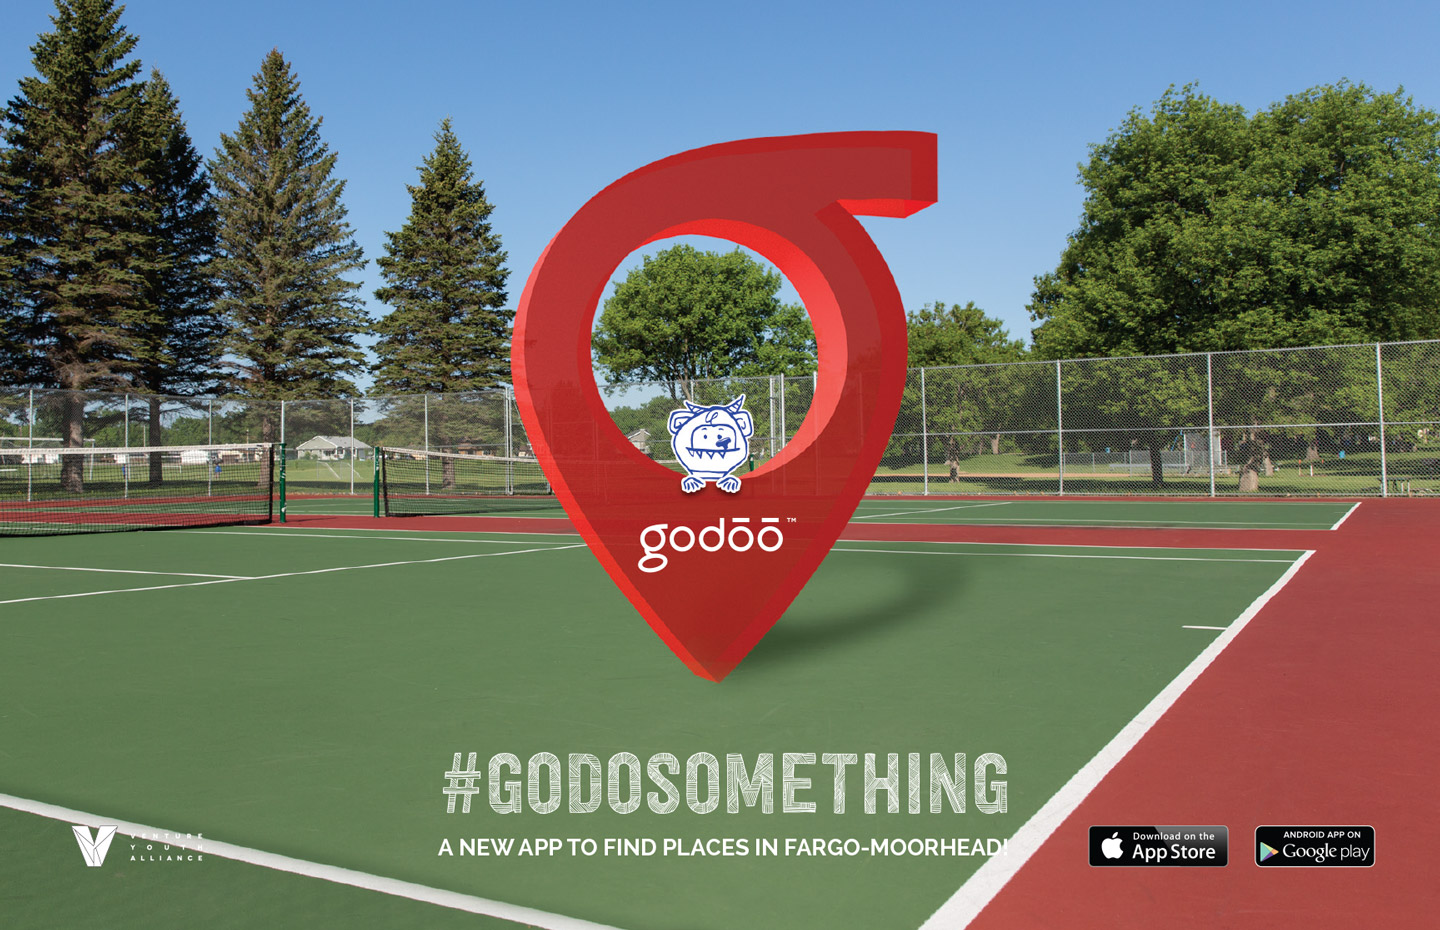 Godoo icon and cute monster in a tennis court with text #godosomething a new app to find places in Fargo-Moorhead